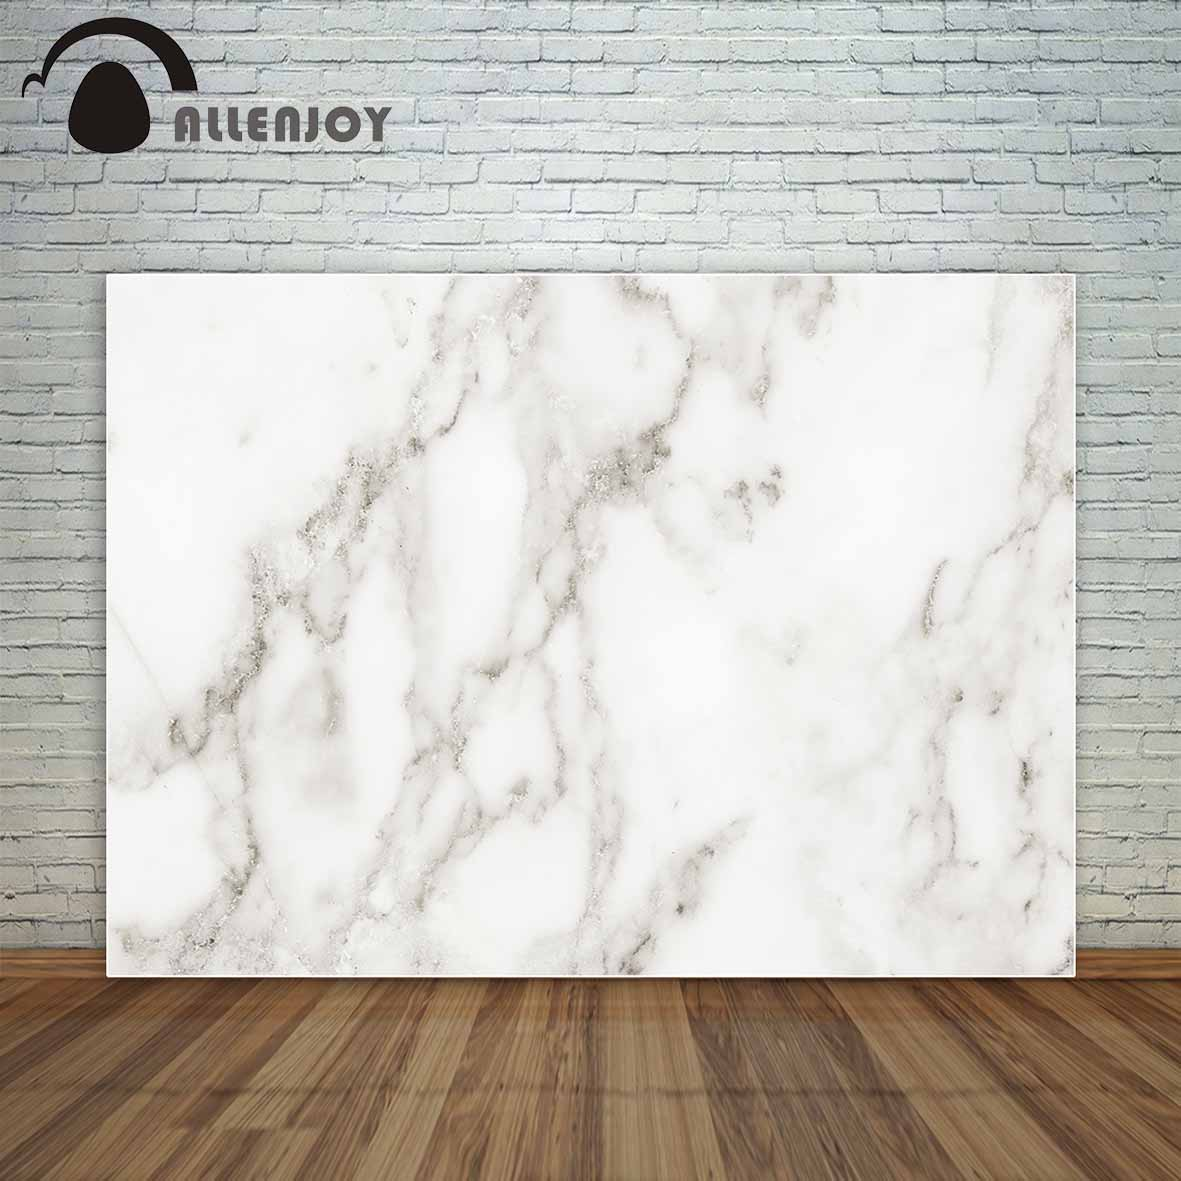 Allenjoy White marble texture with natural gray pattern for background backdrop party background cloths photography vinyl